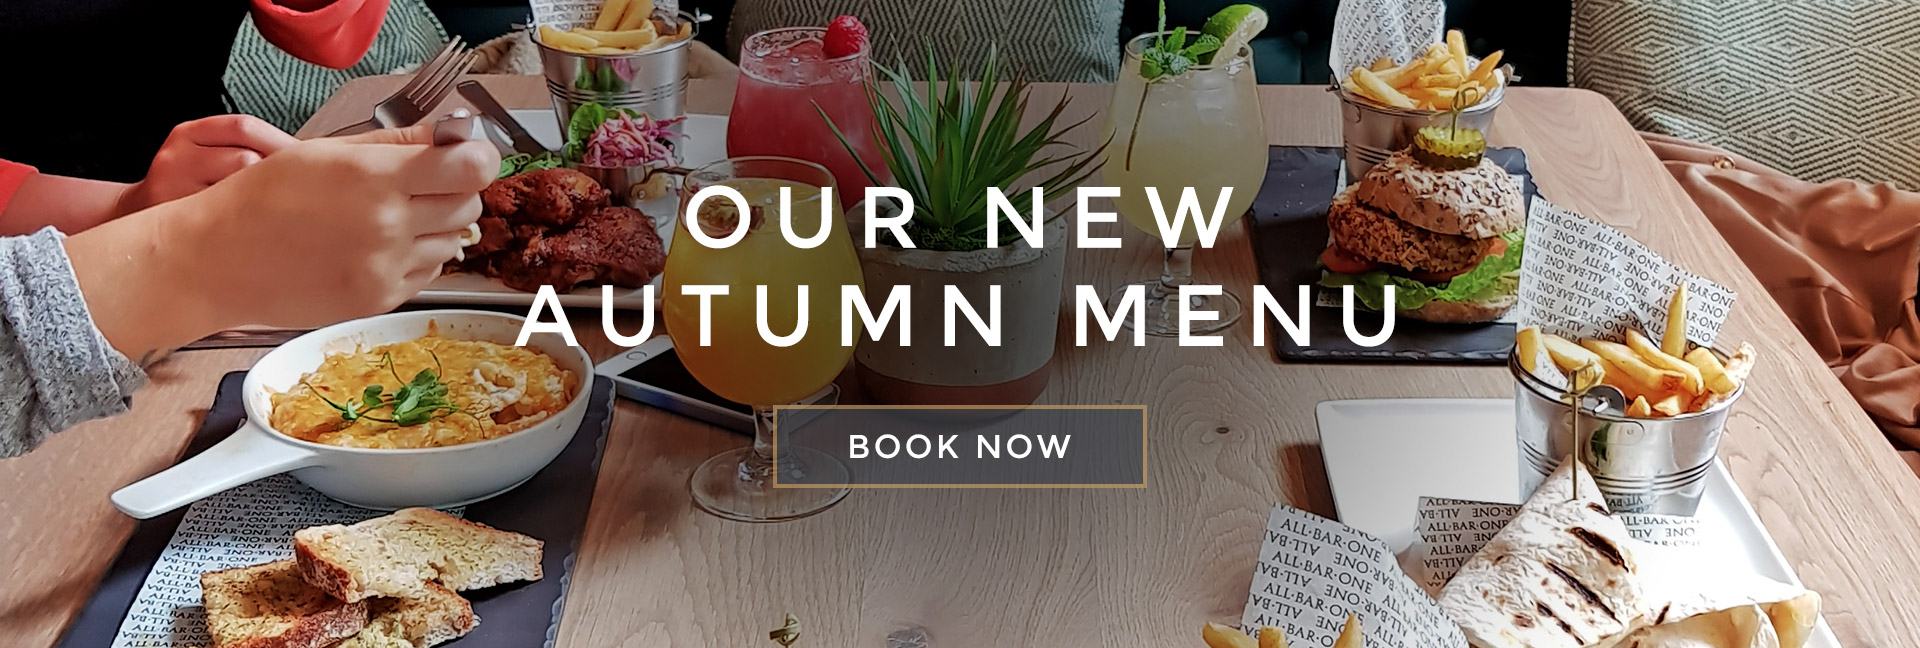 Our new Autumn menu at All Bar One The O2 - Book now